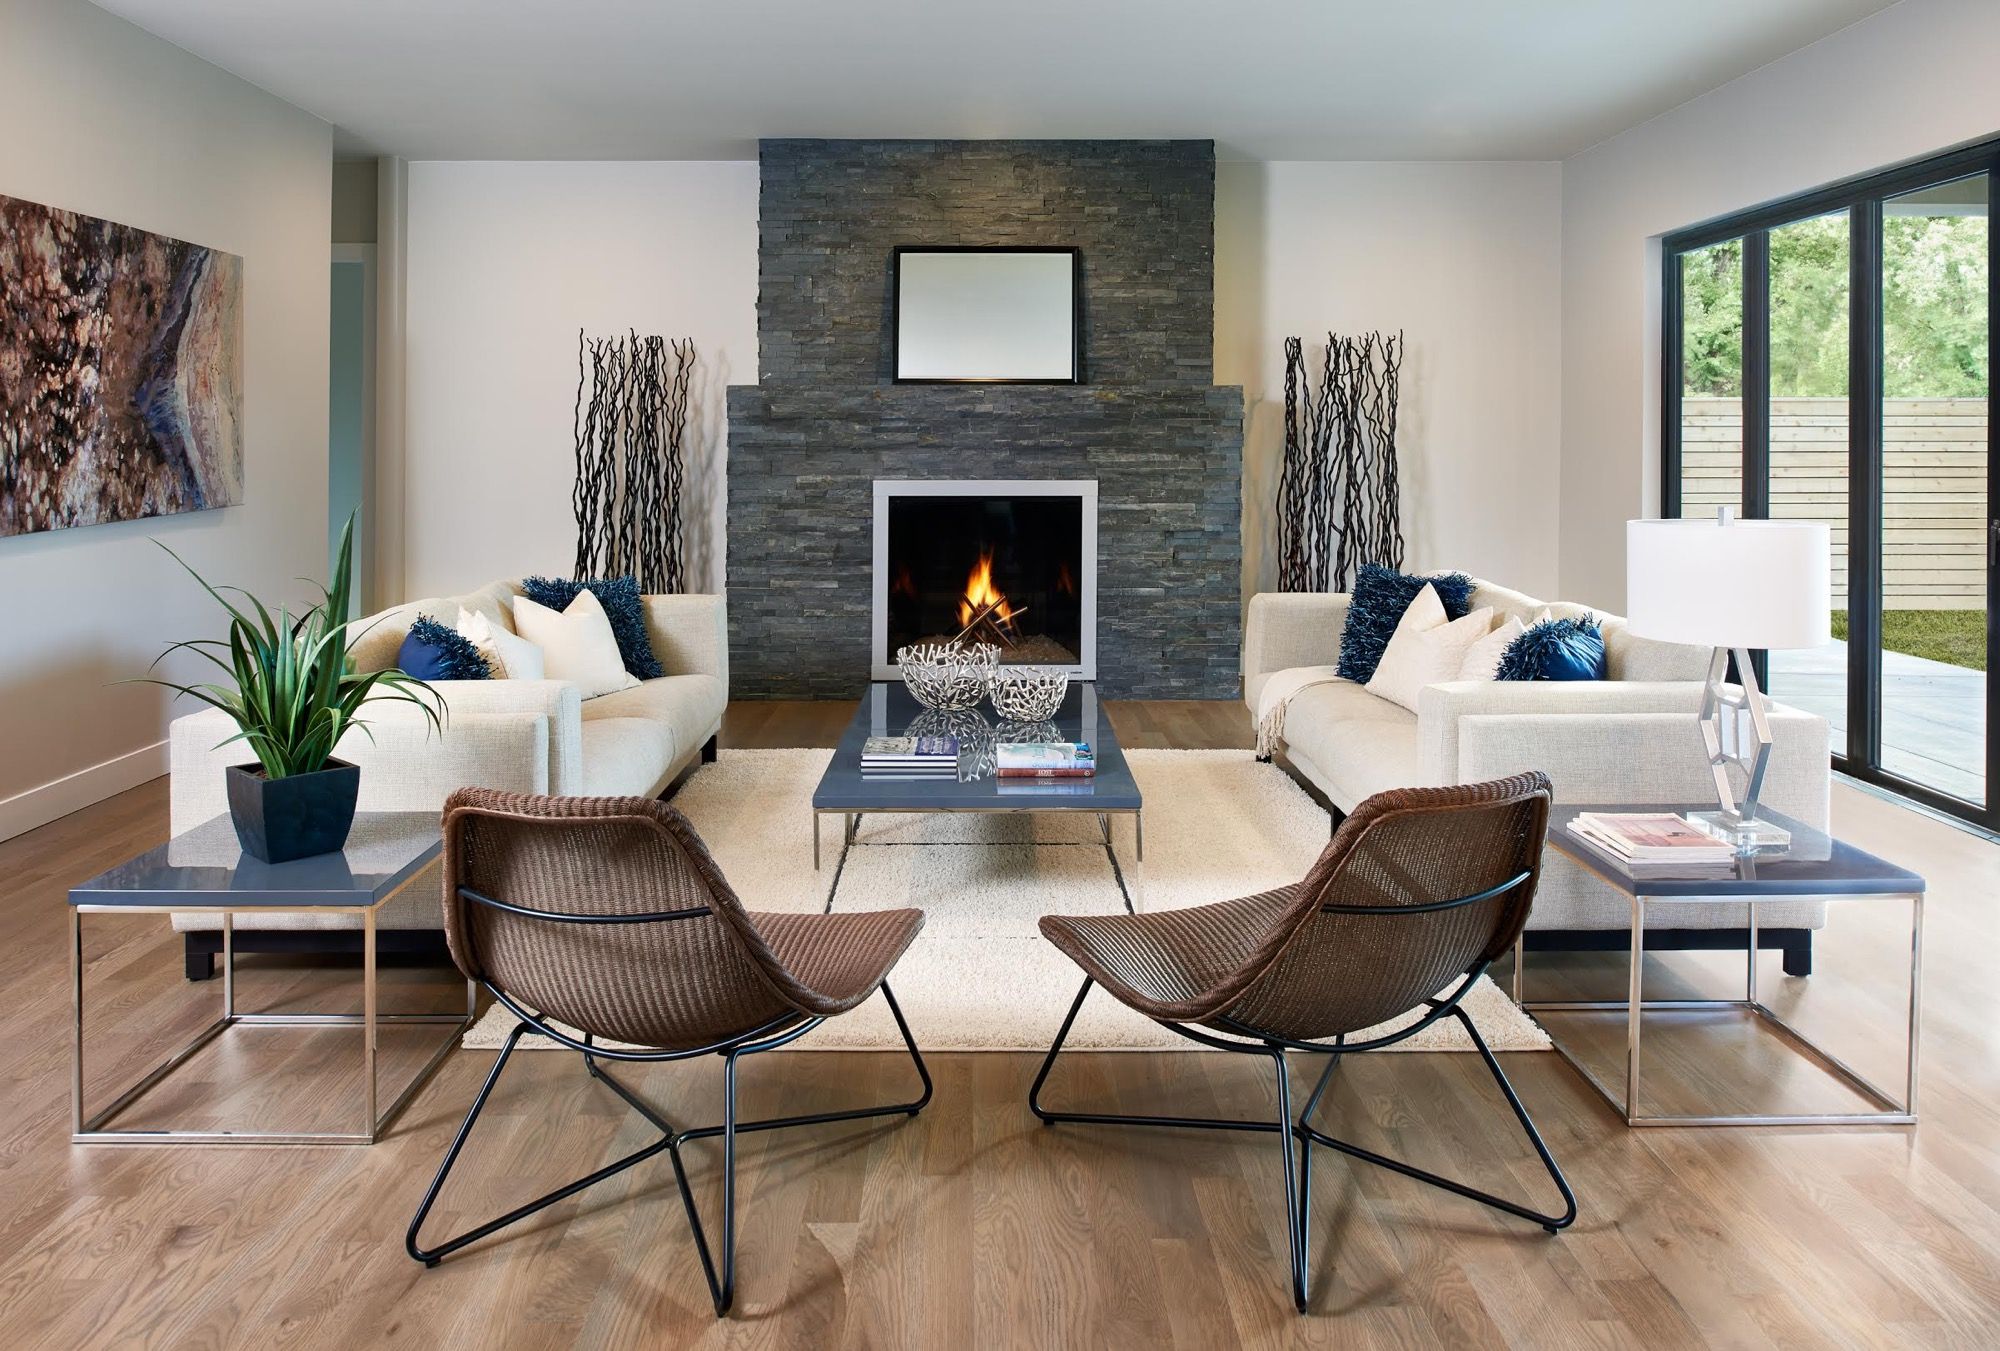 Interior Design Home Staging.  Why Use Professional Home Staging Go2Guys Inc